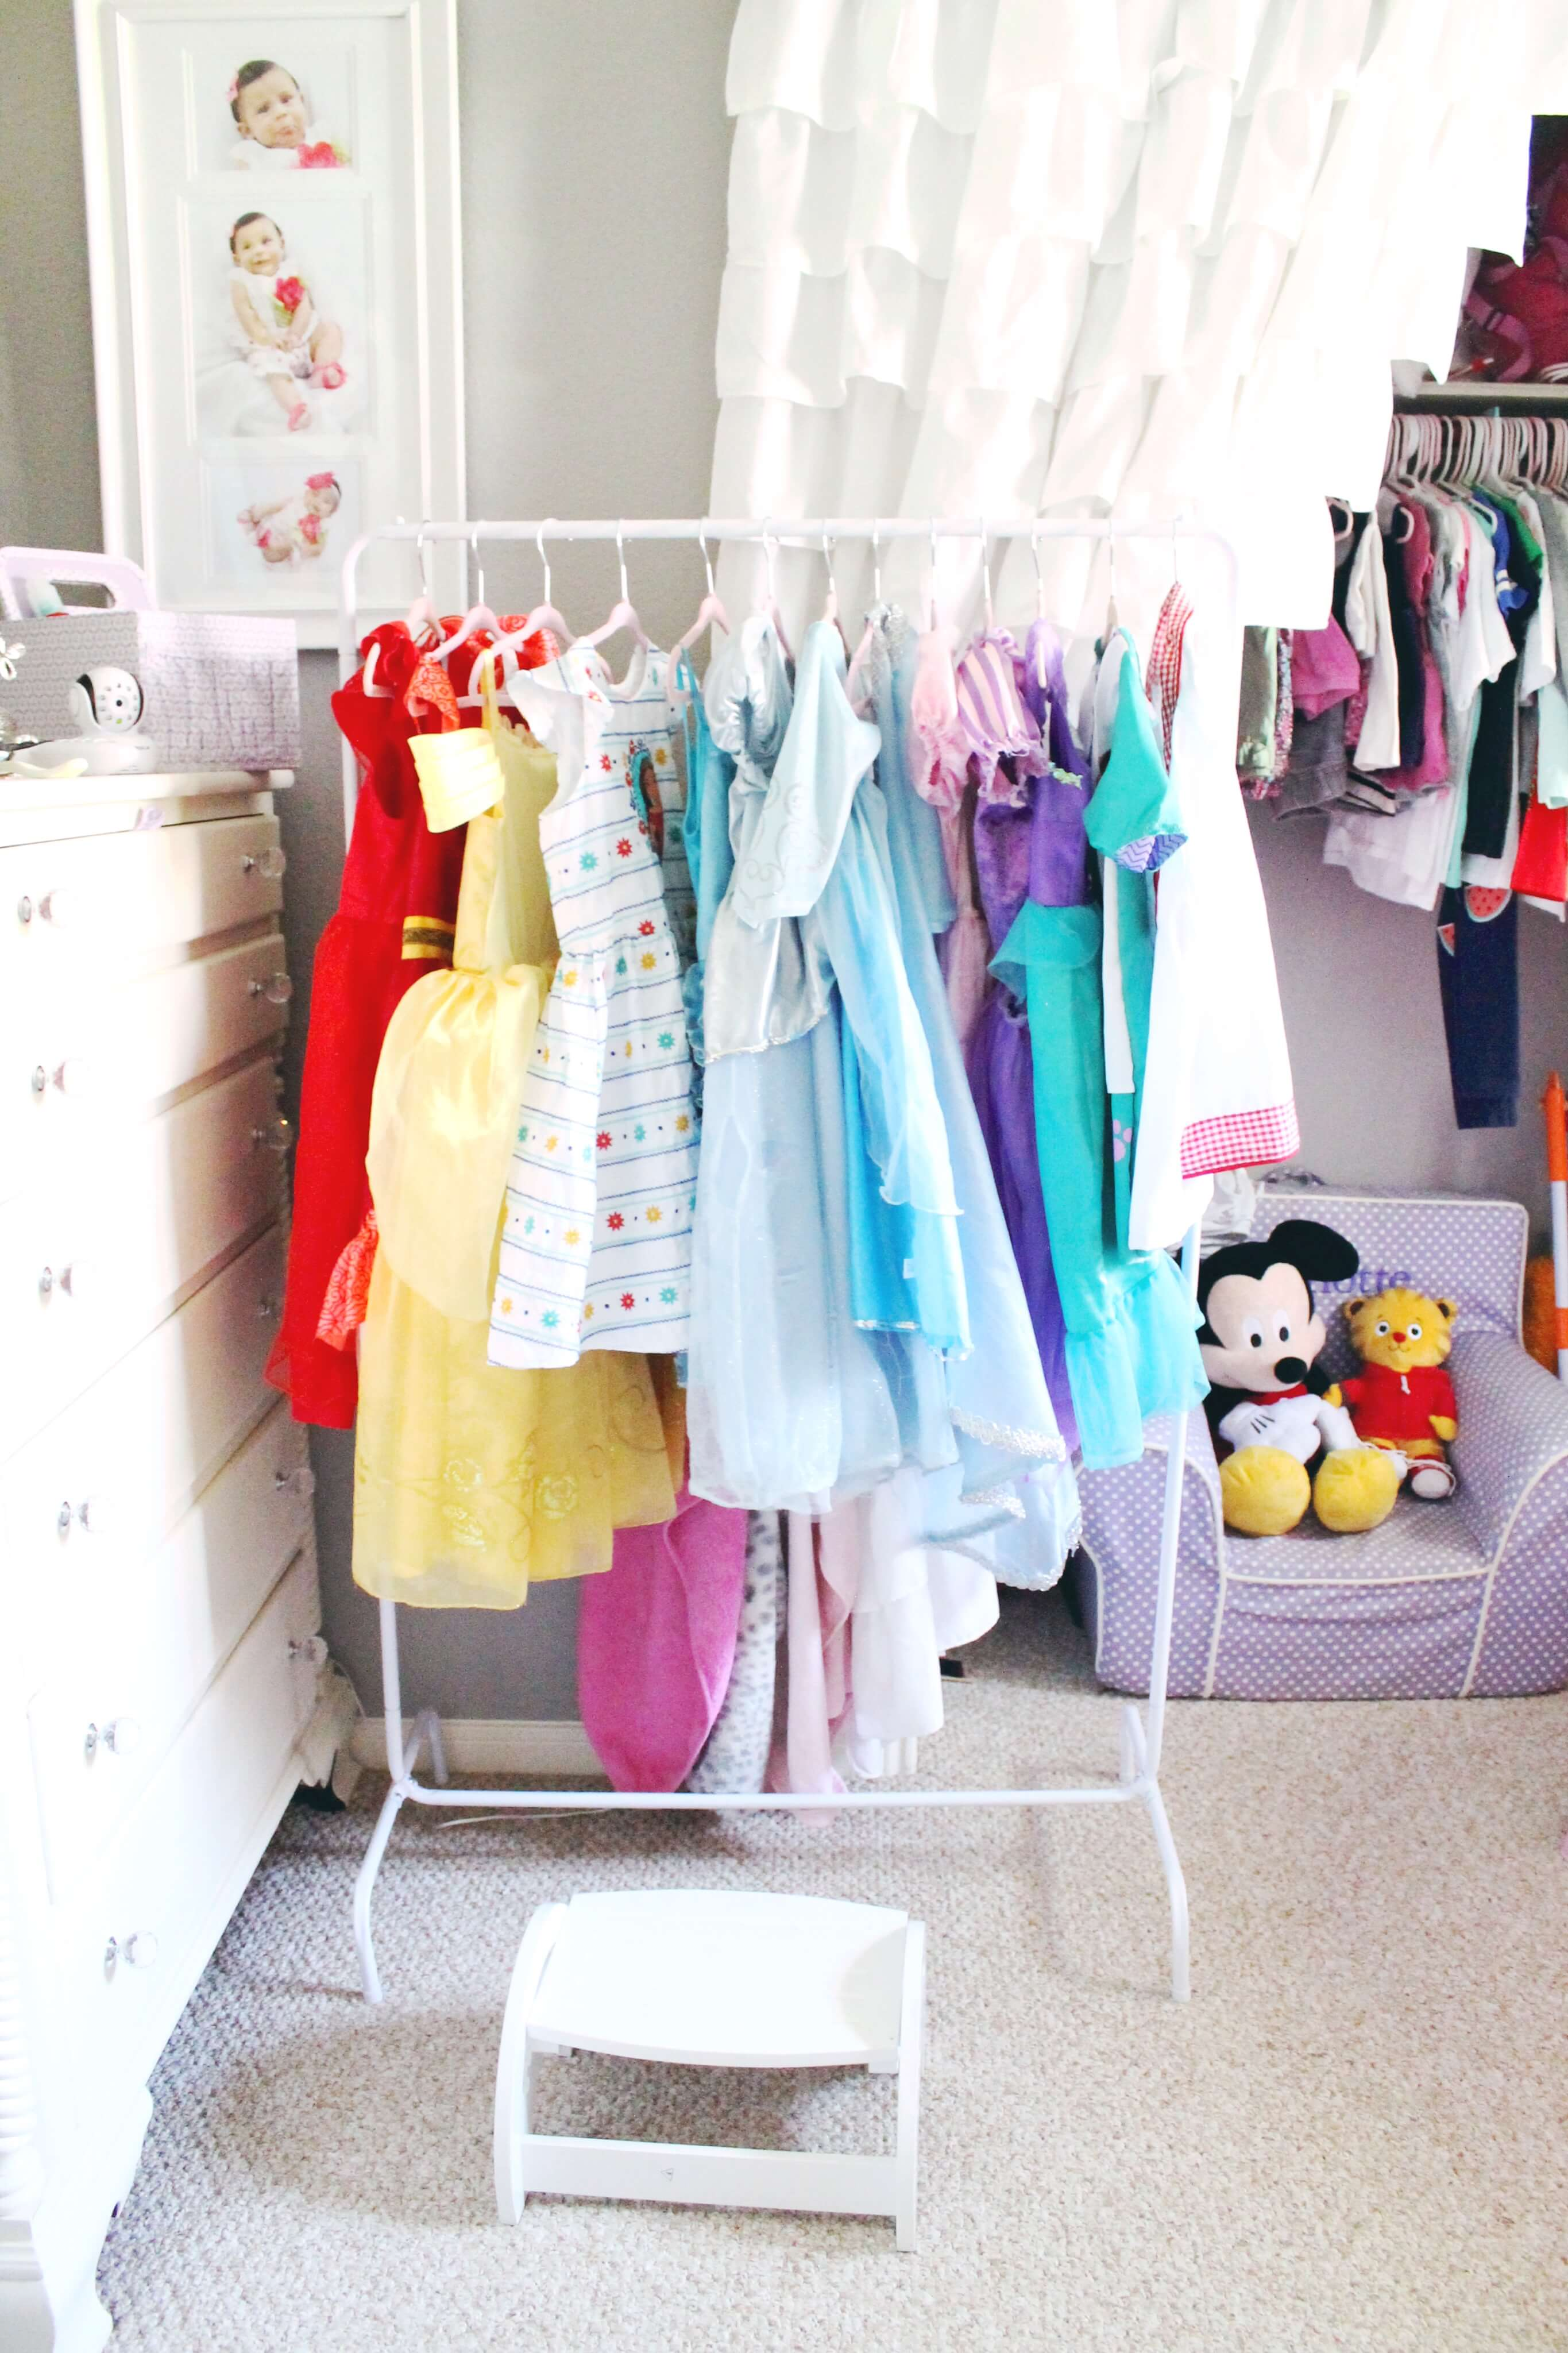 The cutest dressup garment rack. This perfectly organizes all of your little girl's princess dresses and dressup clothes.